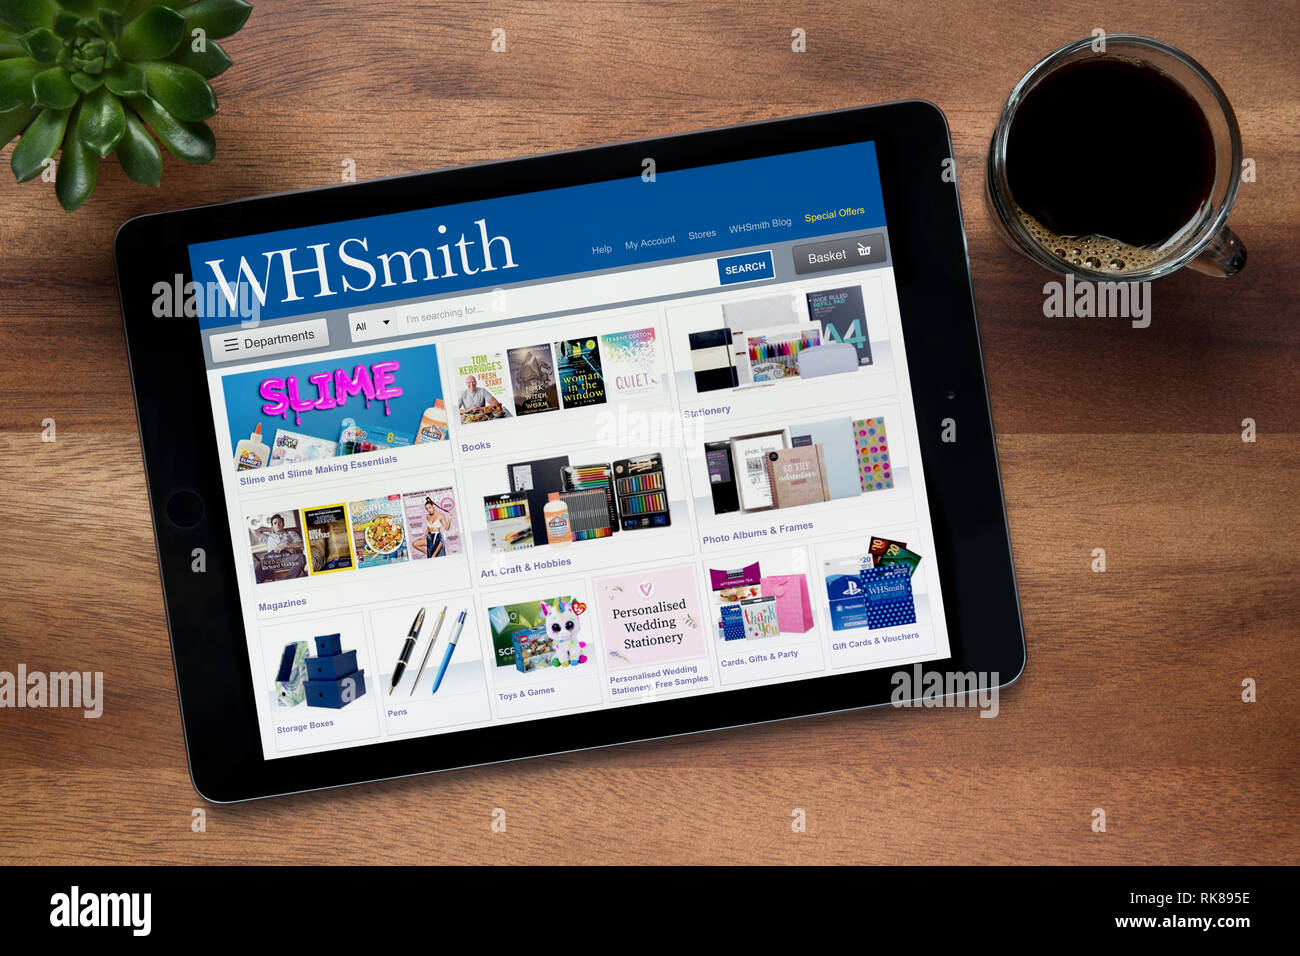 The website of WH Smith is seen on an iPad tablet, on a wooden table along with an espresso coffee and a house plant (Editorial use only). - Stock Image